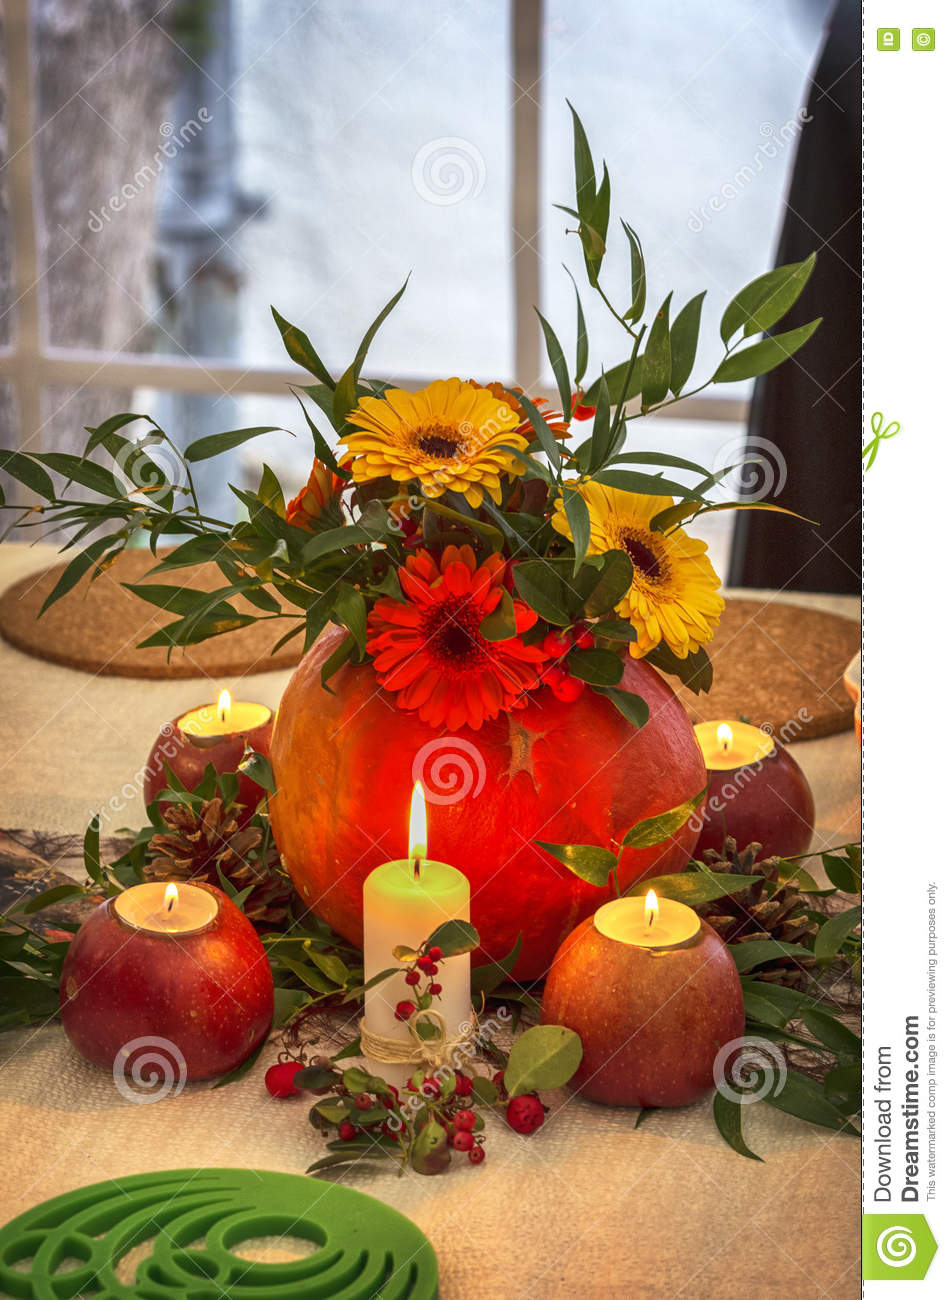 Dinner Party Table Setting Decorations Stock Photo Image Of Decor Rustic 81319408